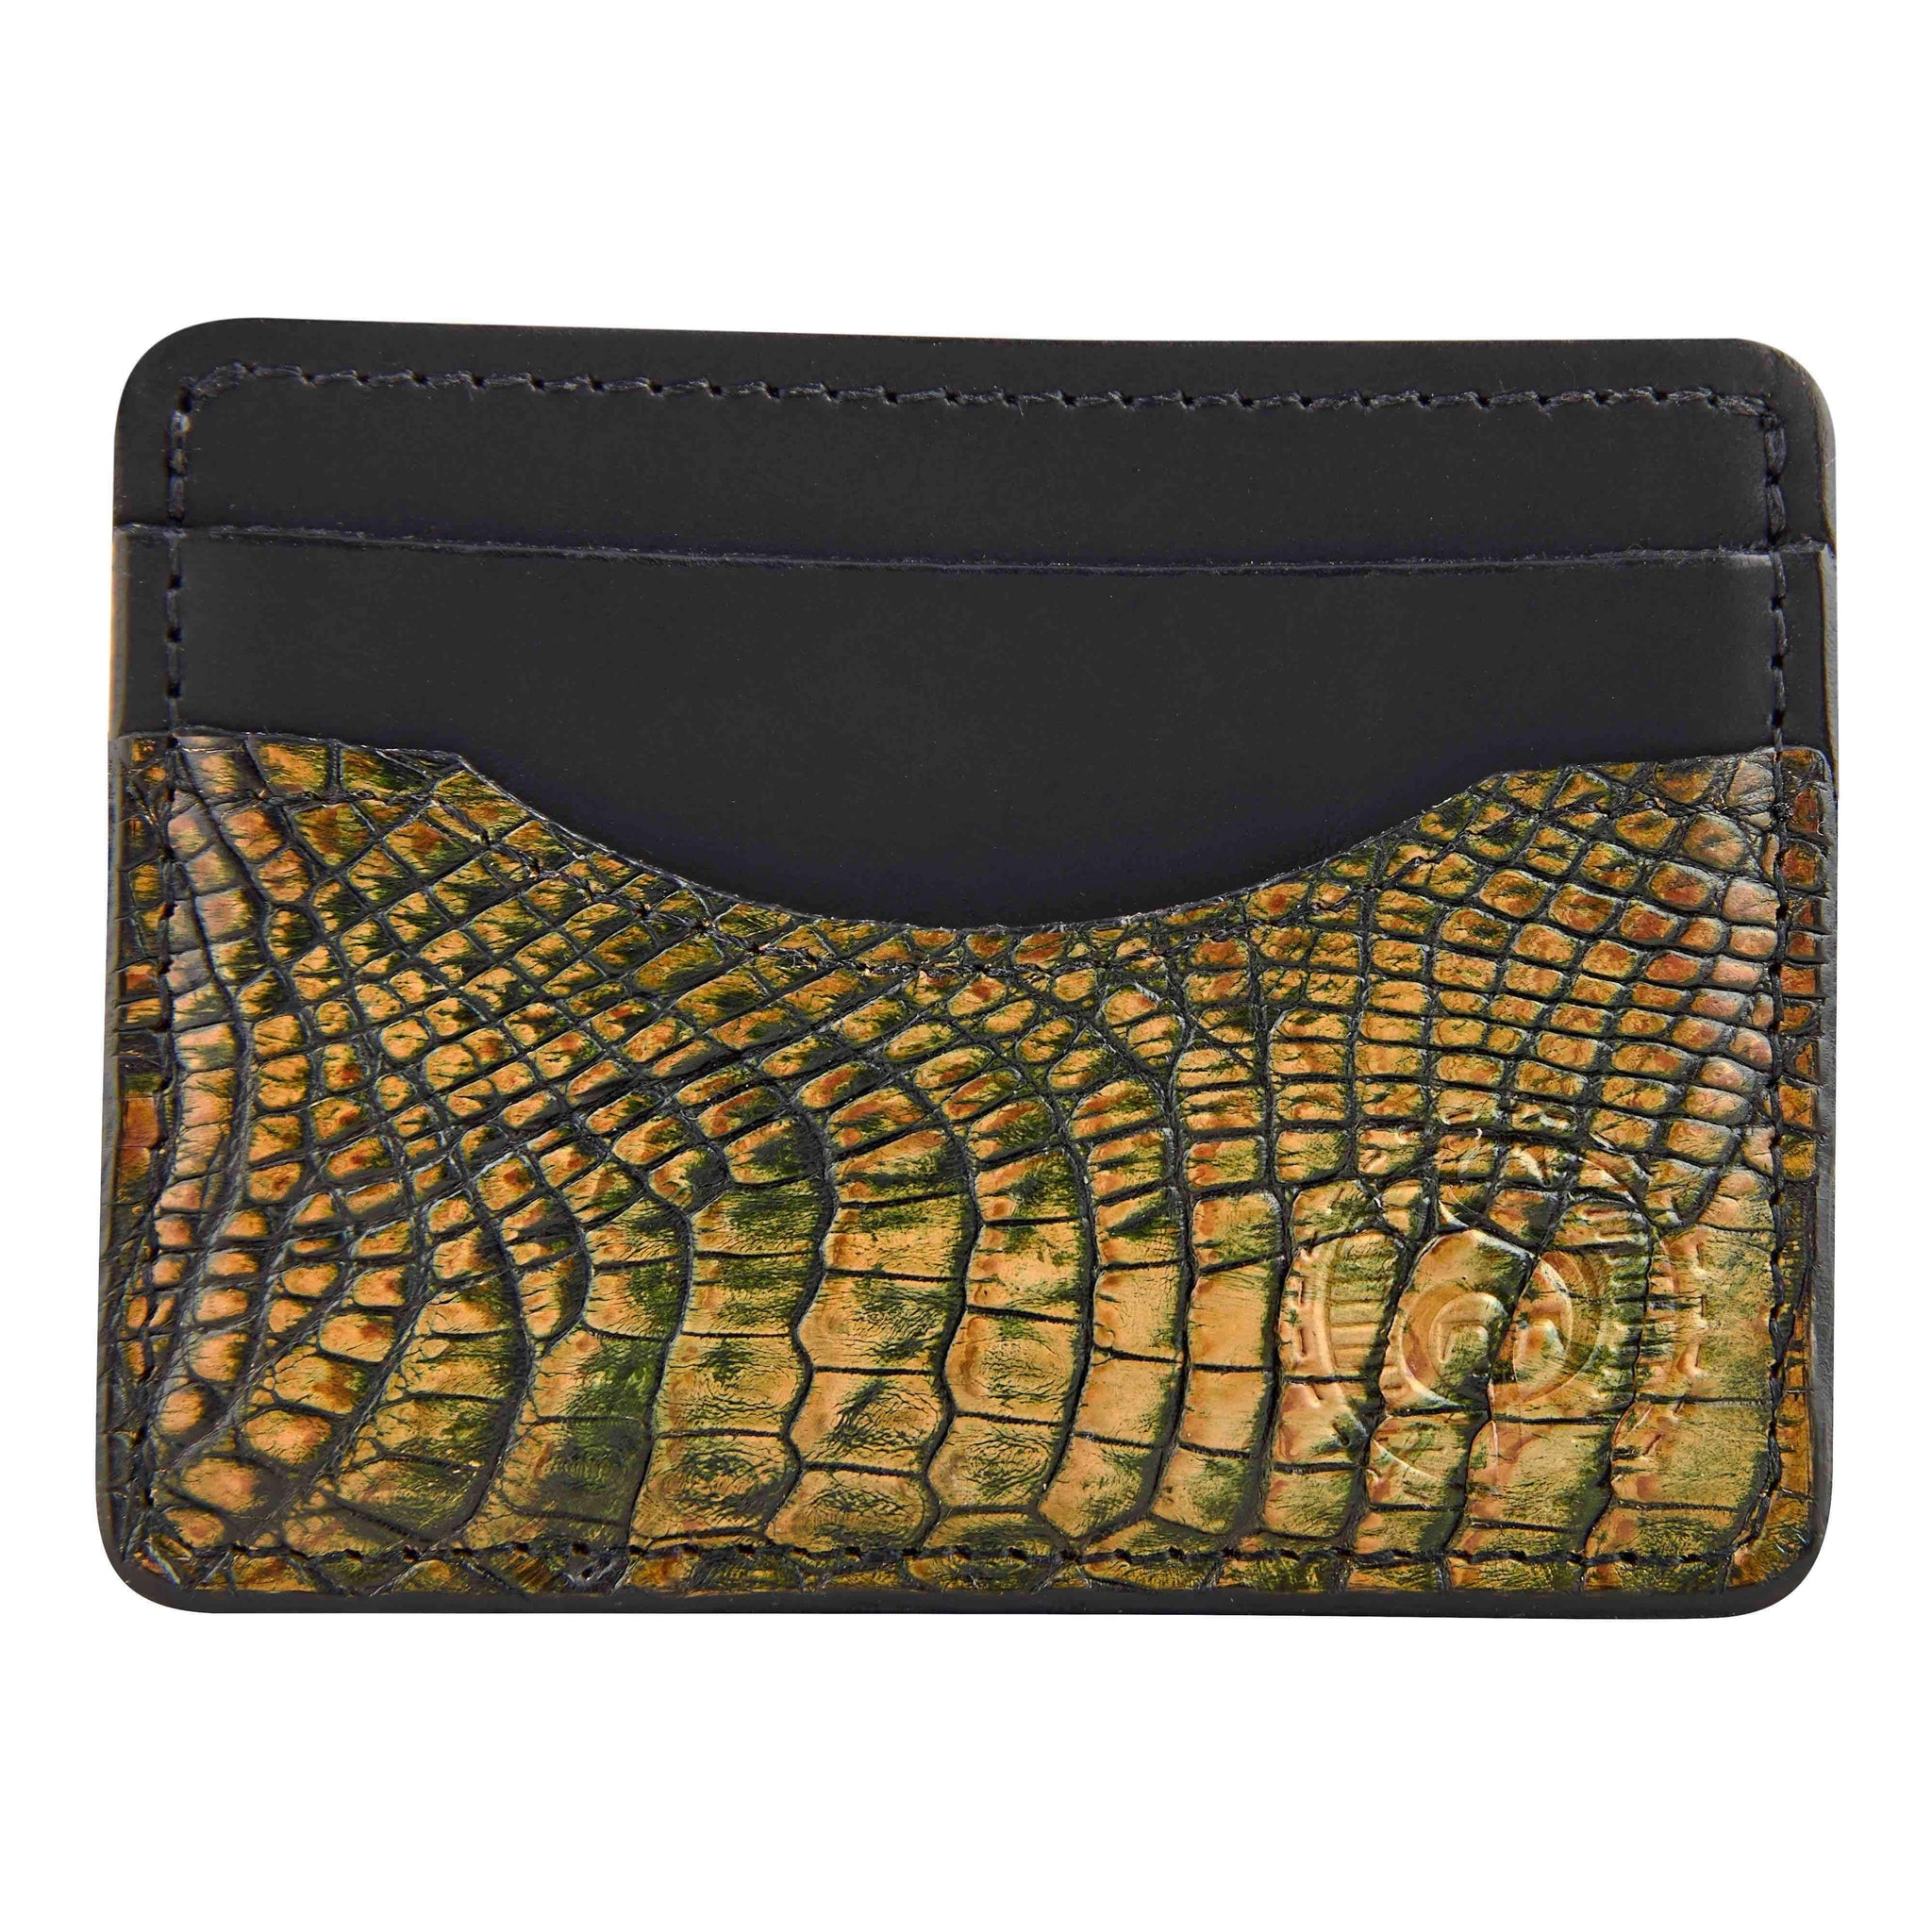 Alligator skin credit card holder wallet